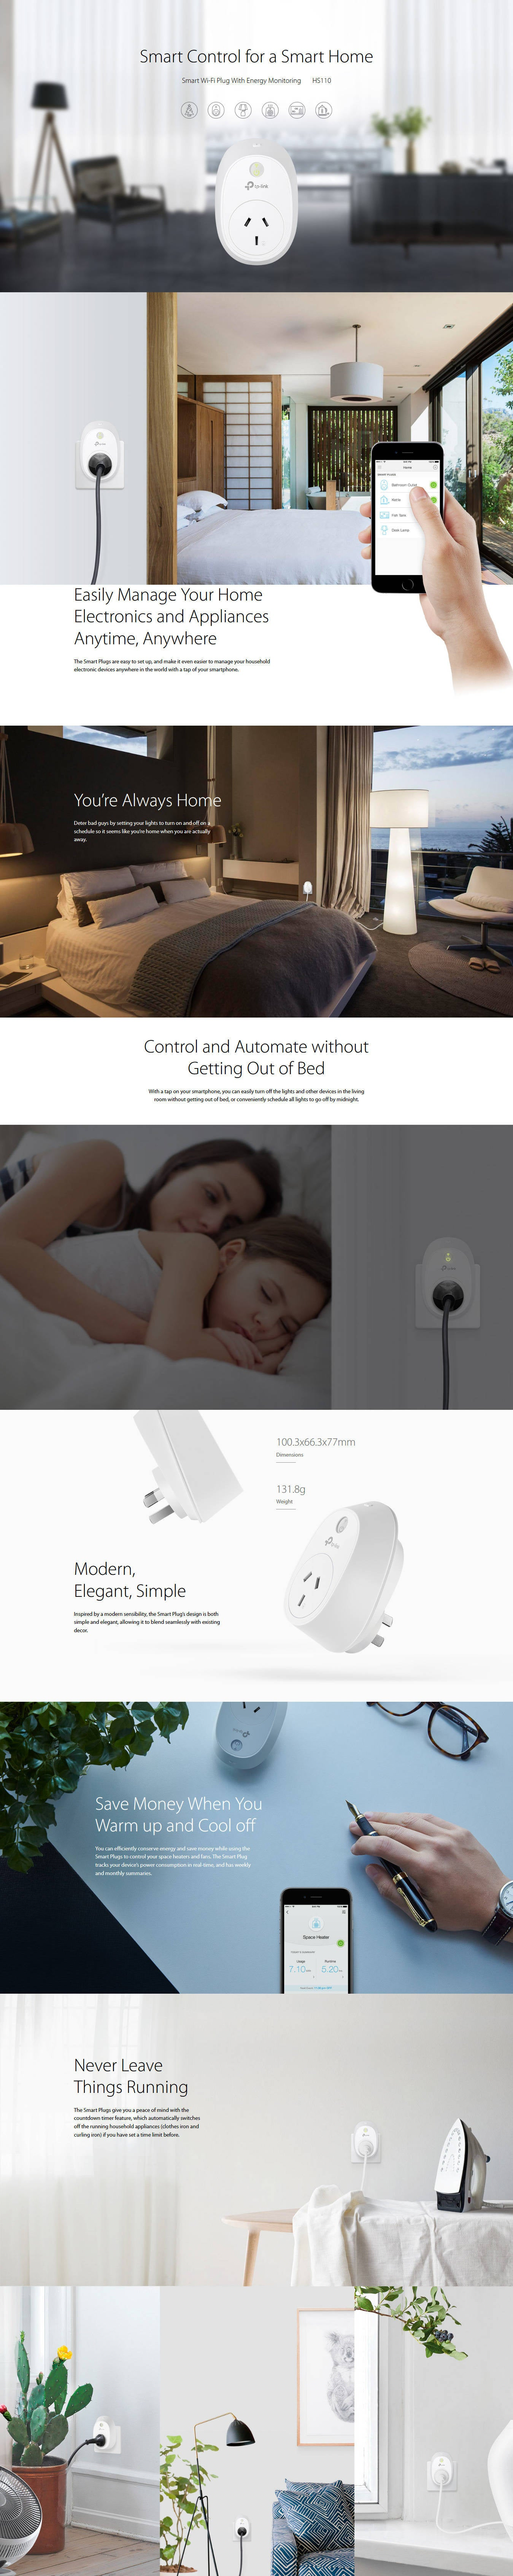 HS110 Smart Wi-Fi Plug with Energy Monitoring